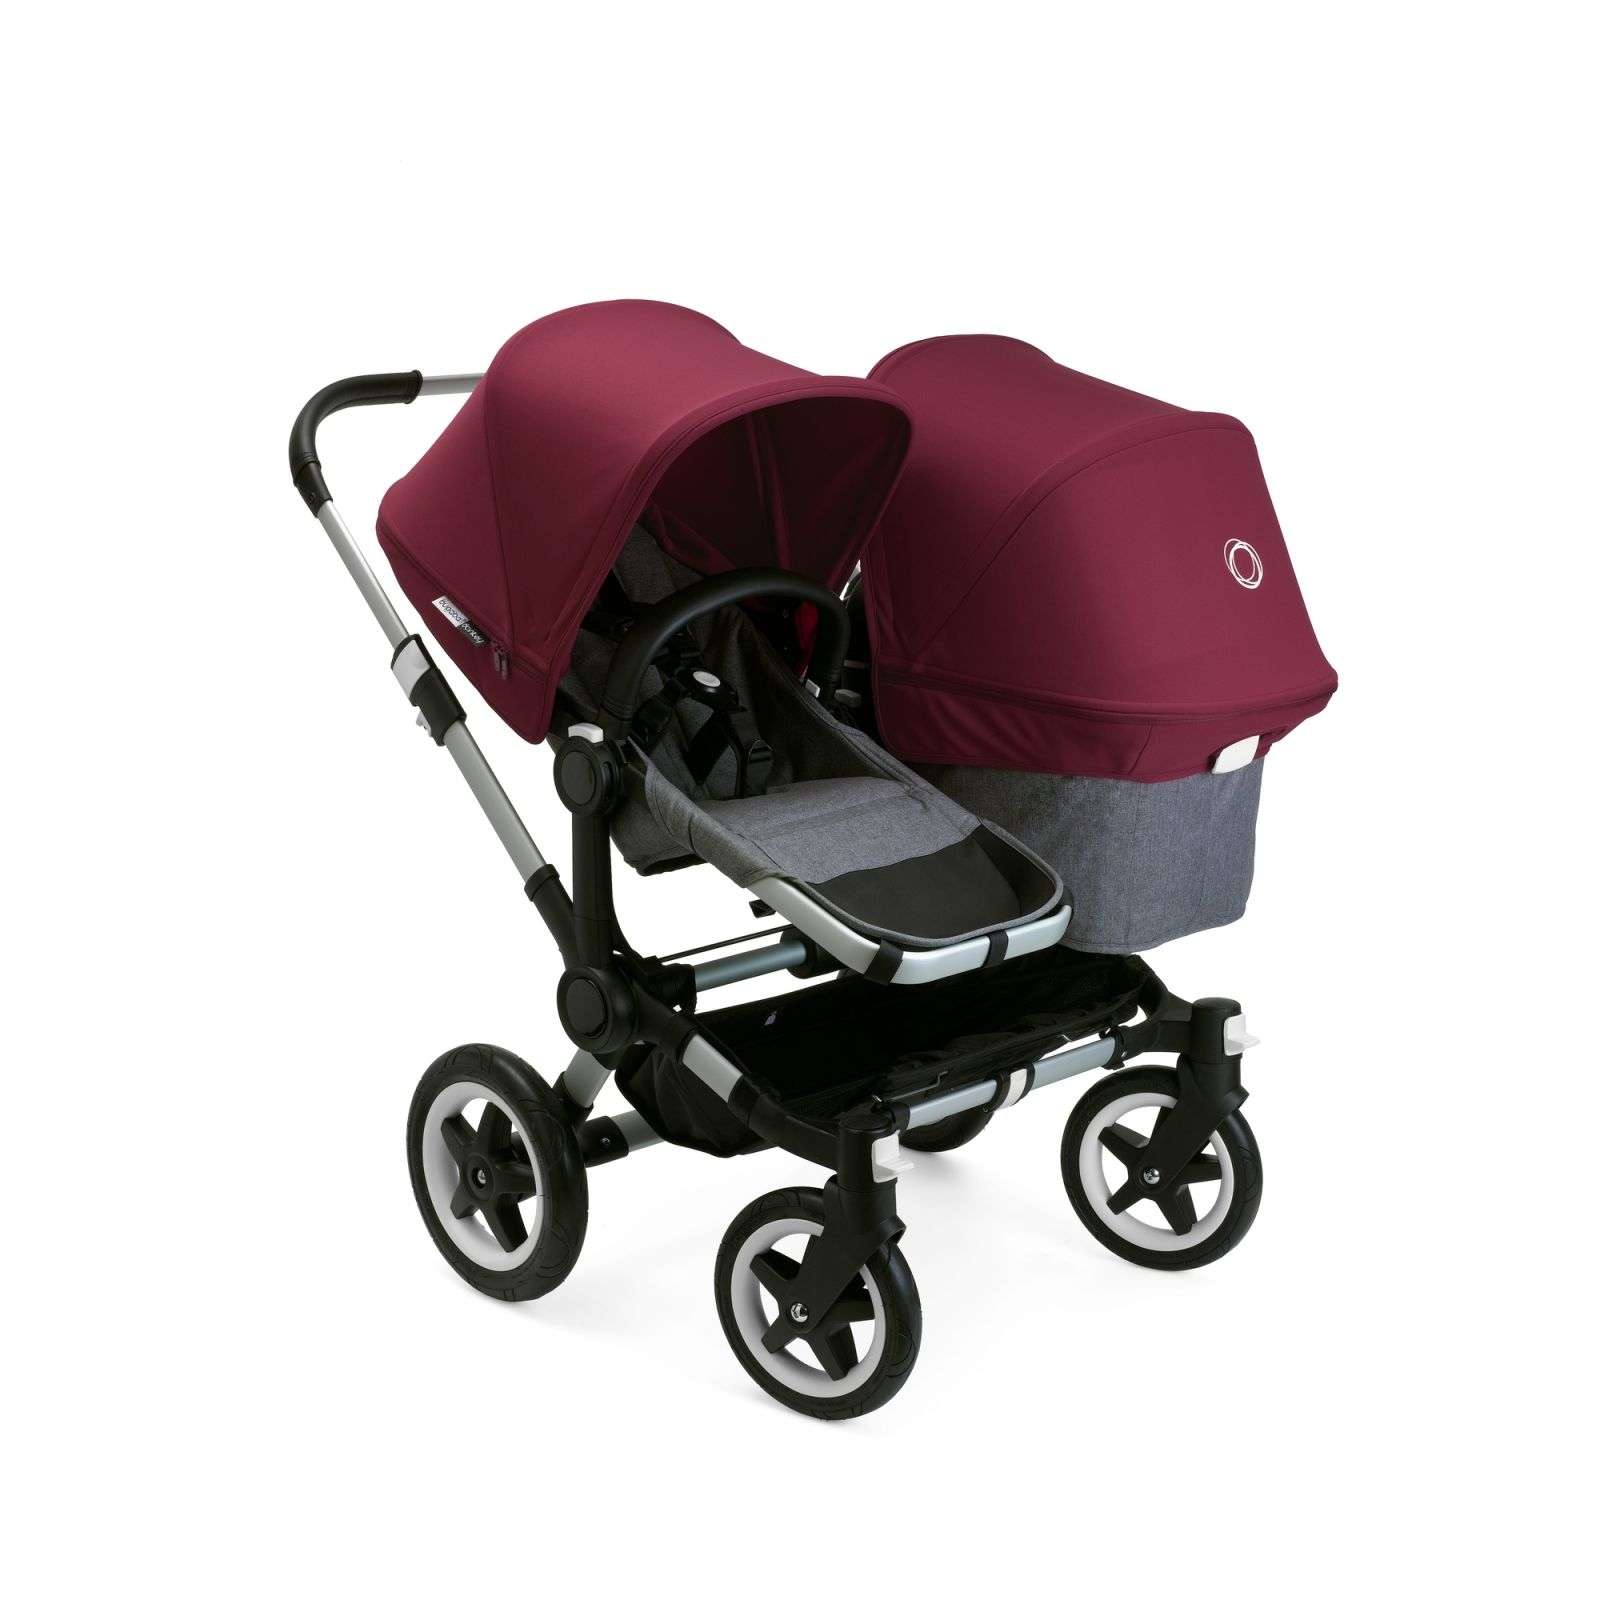 Shop Bugaboo Donkey2 Online Baby Plus Baby strollers